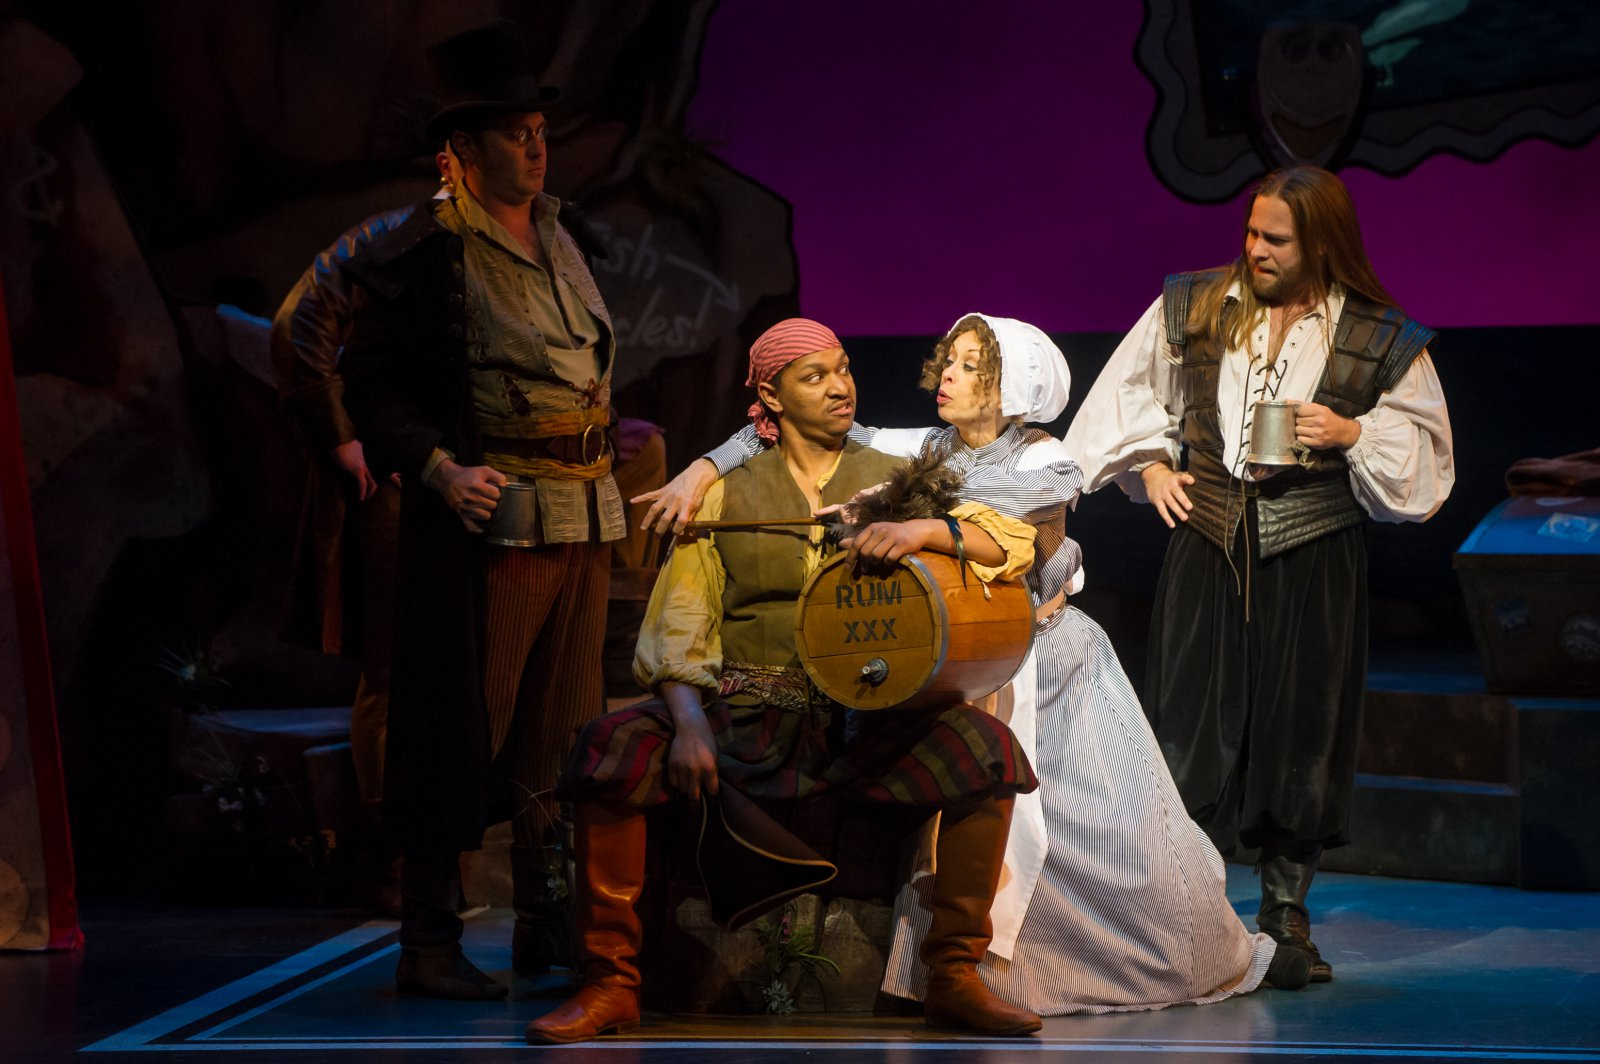 Nathan Wesselowski (Samuel), Sean Jackson (Ensemble), Diane Lane (Ruth), and Ryan Charles (Ensemble) of Pirates of Penzance